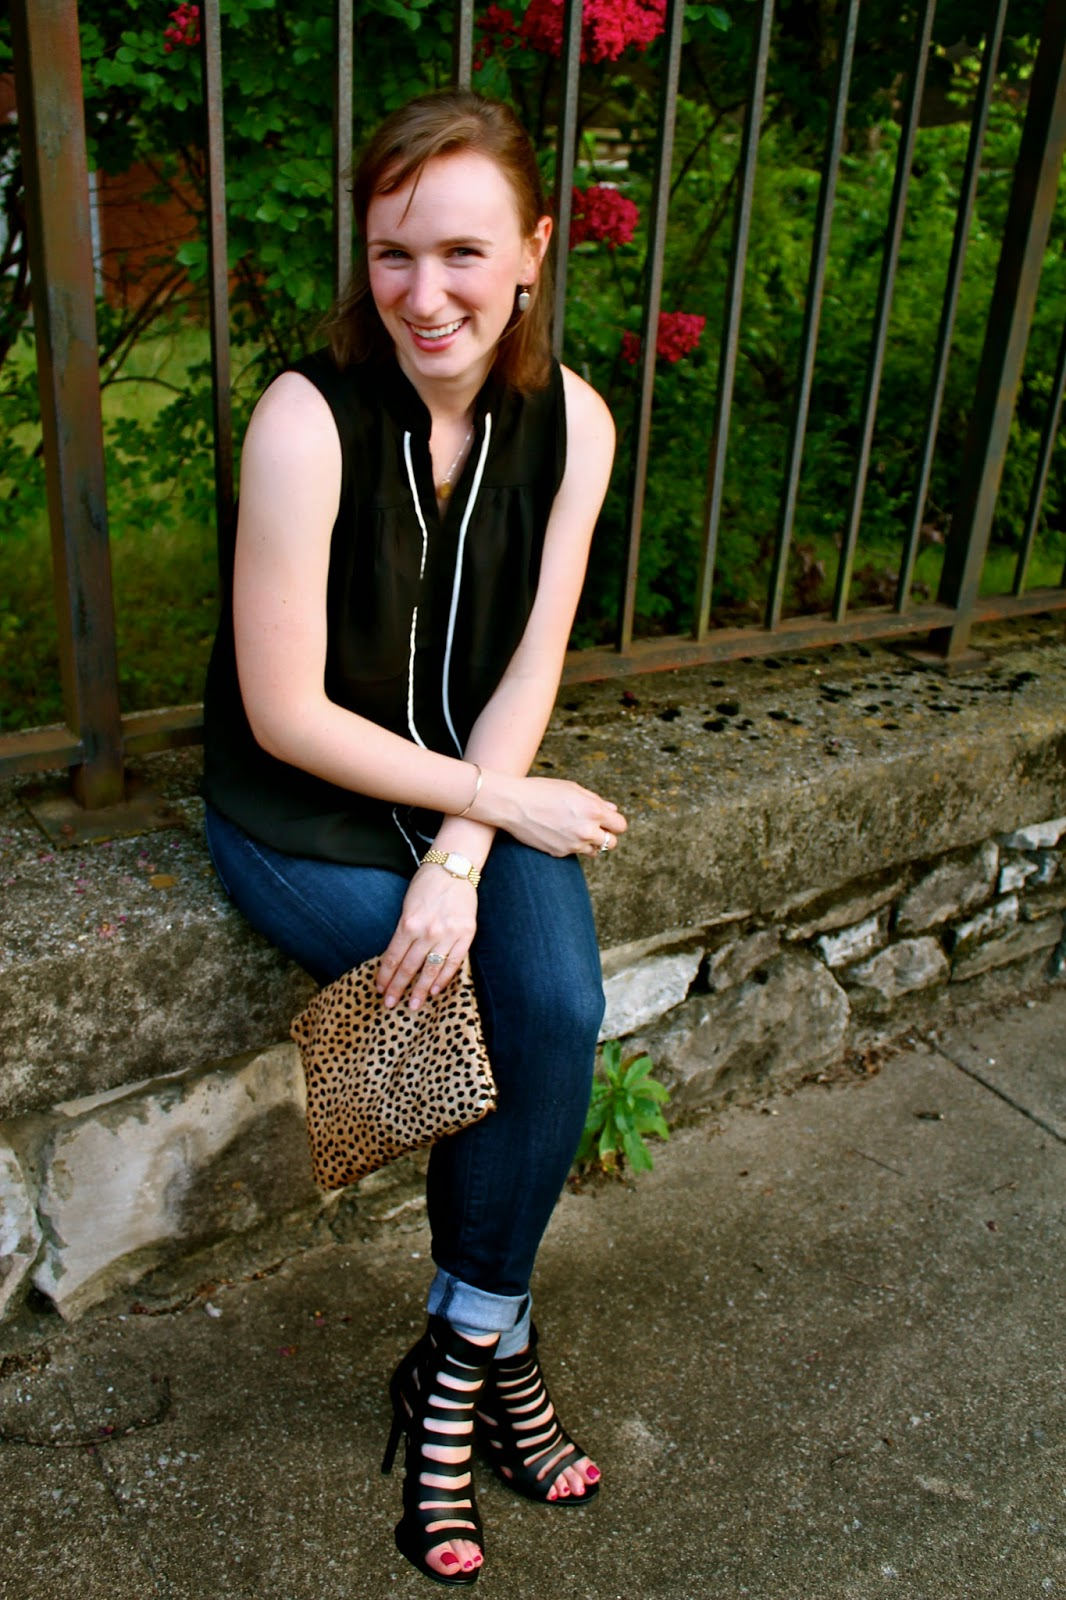 Cheetah Clutch, Ceri Hoover, Citizens of Humanity Jeans, DV Shoes,